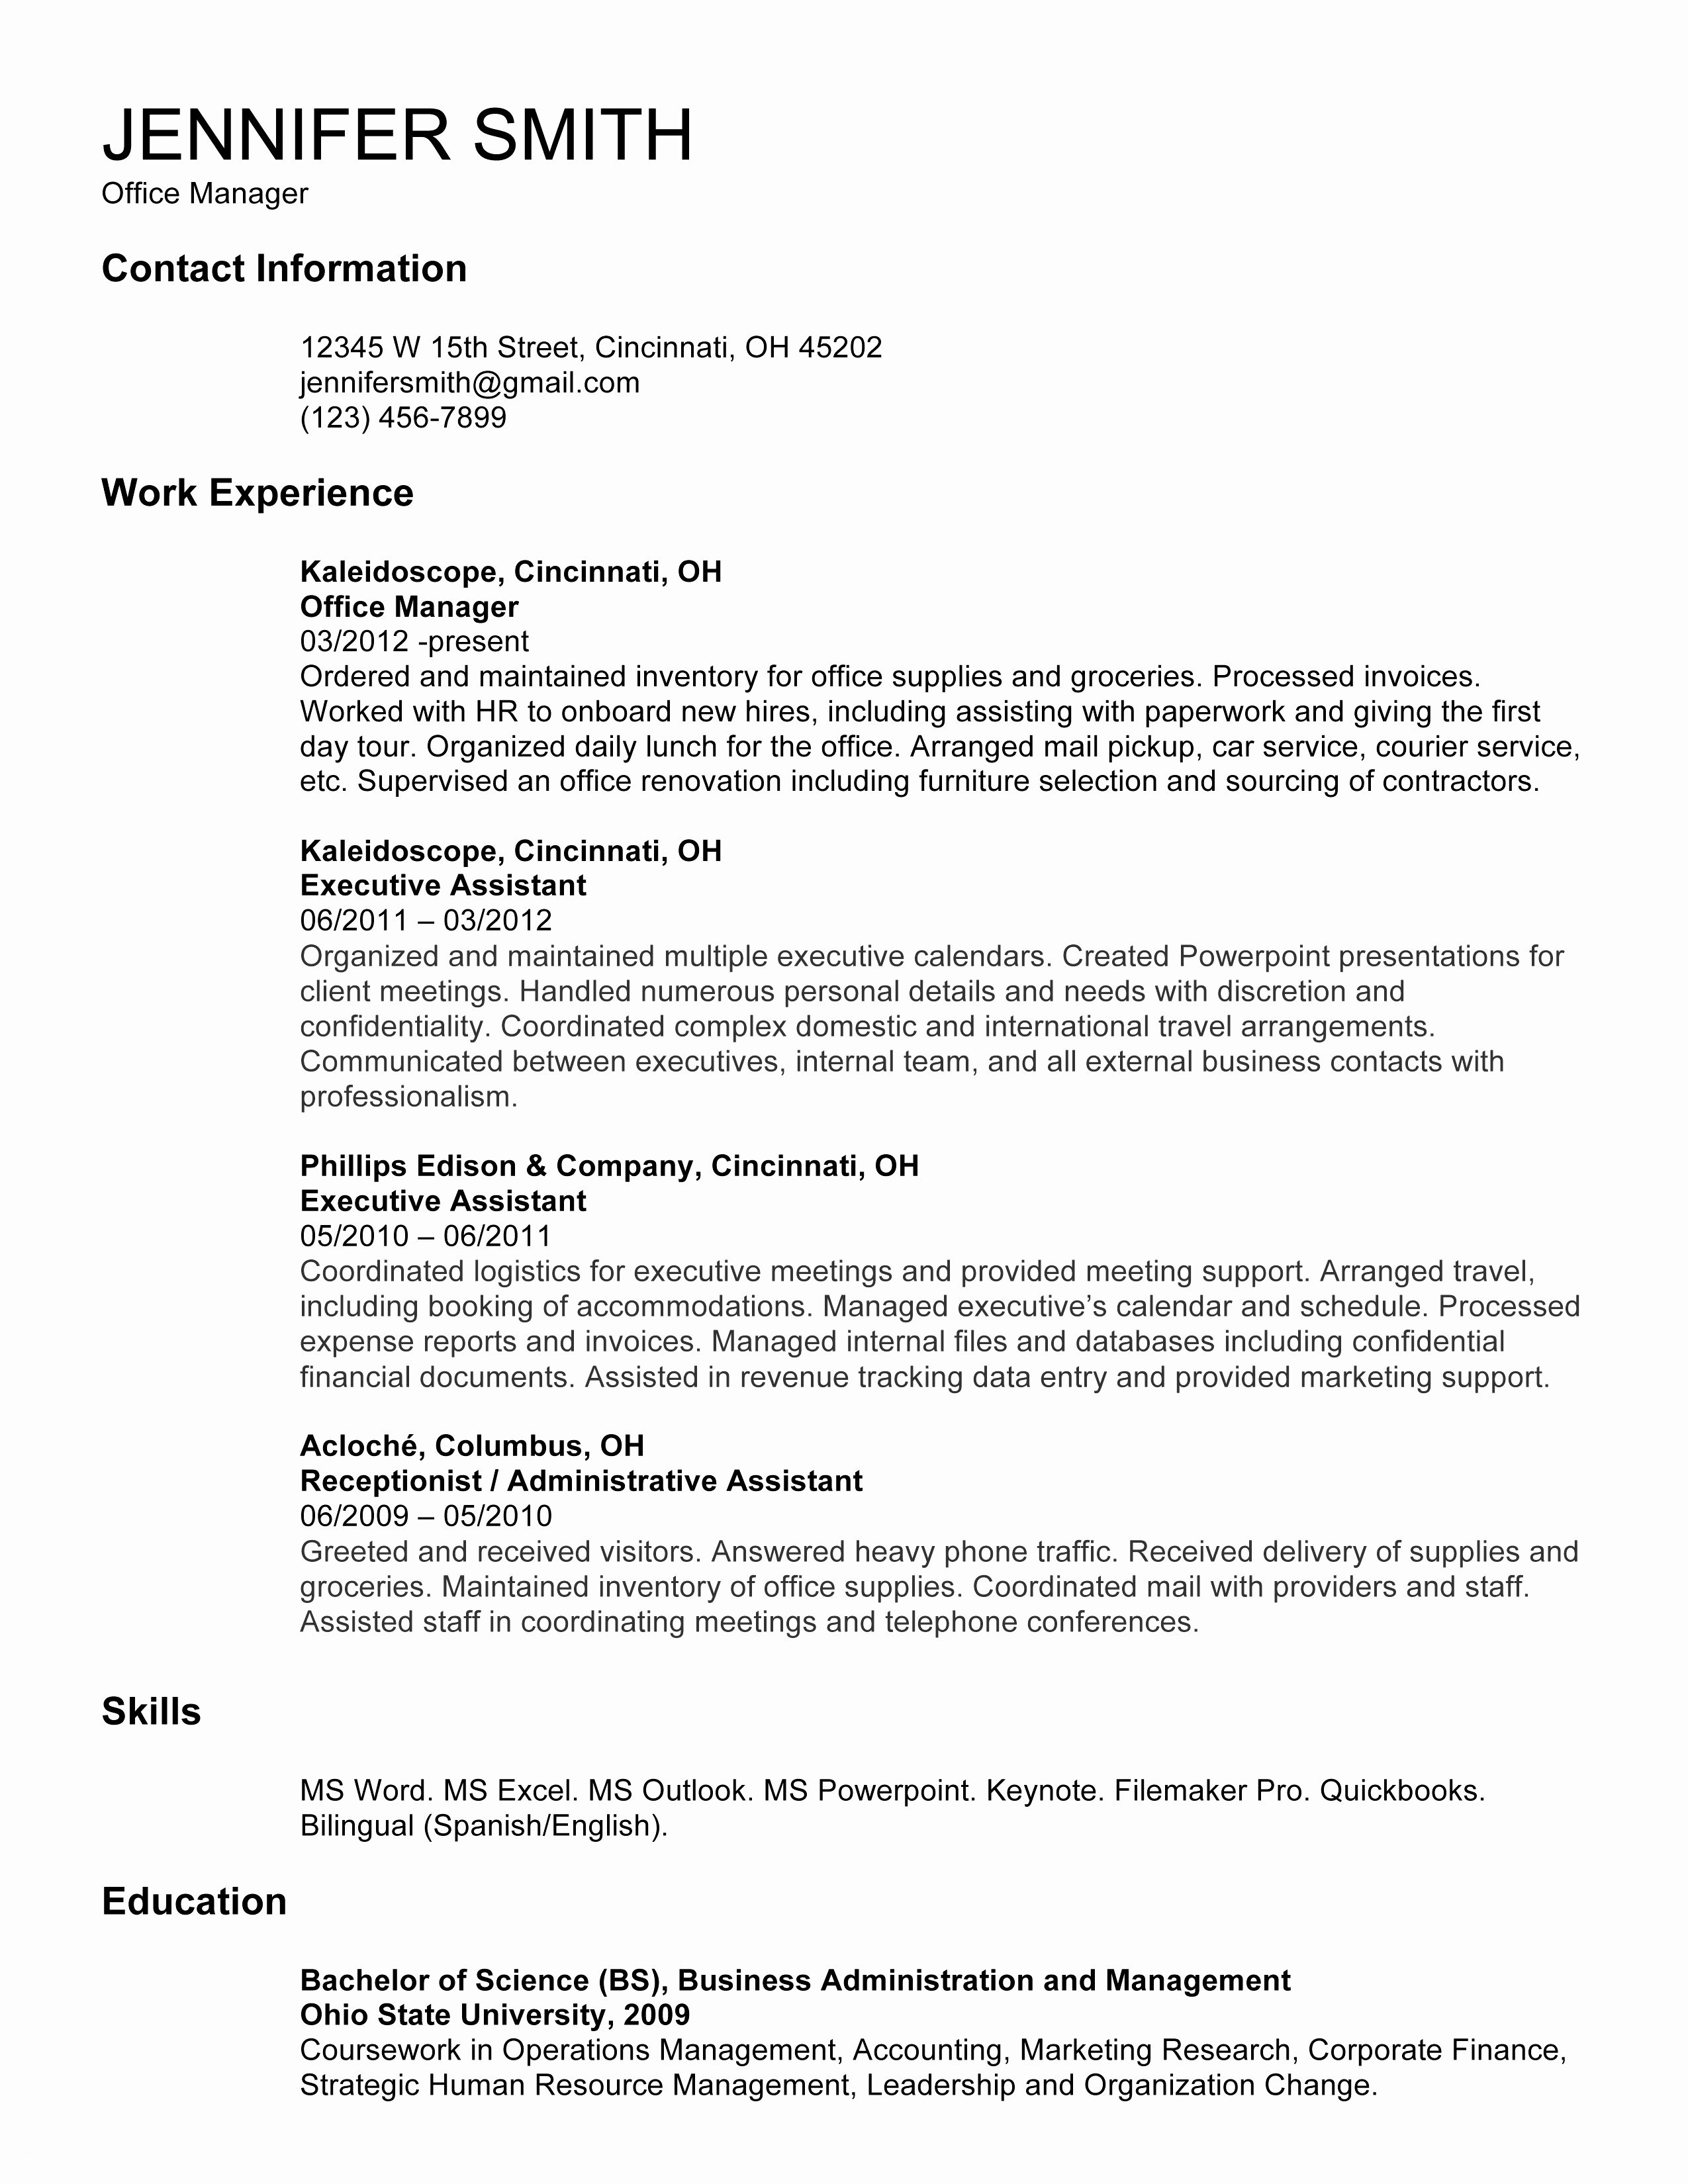 Resume for Medical Receptionist - Receptionist Resume Templates Book Reception Resume Luxury